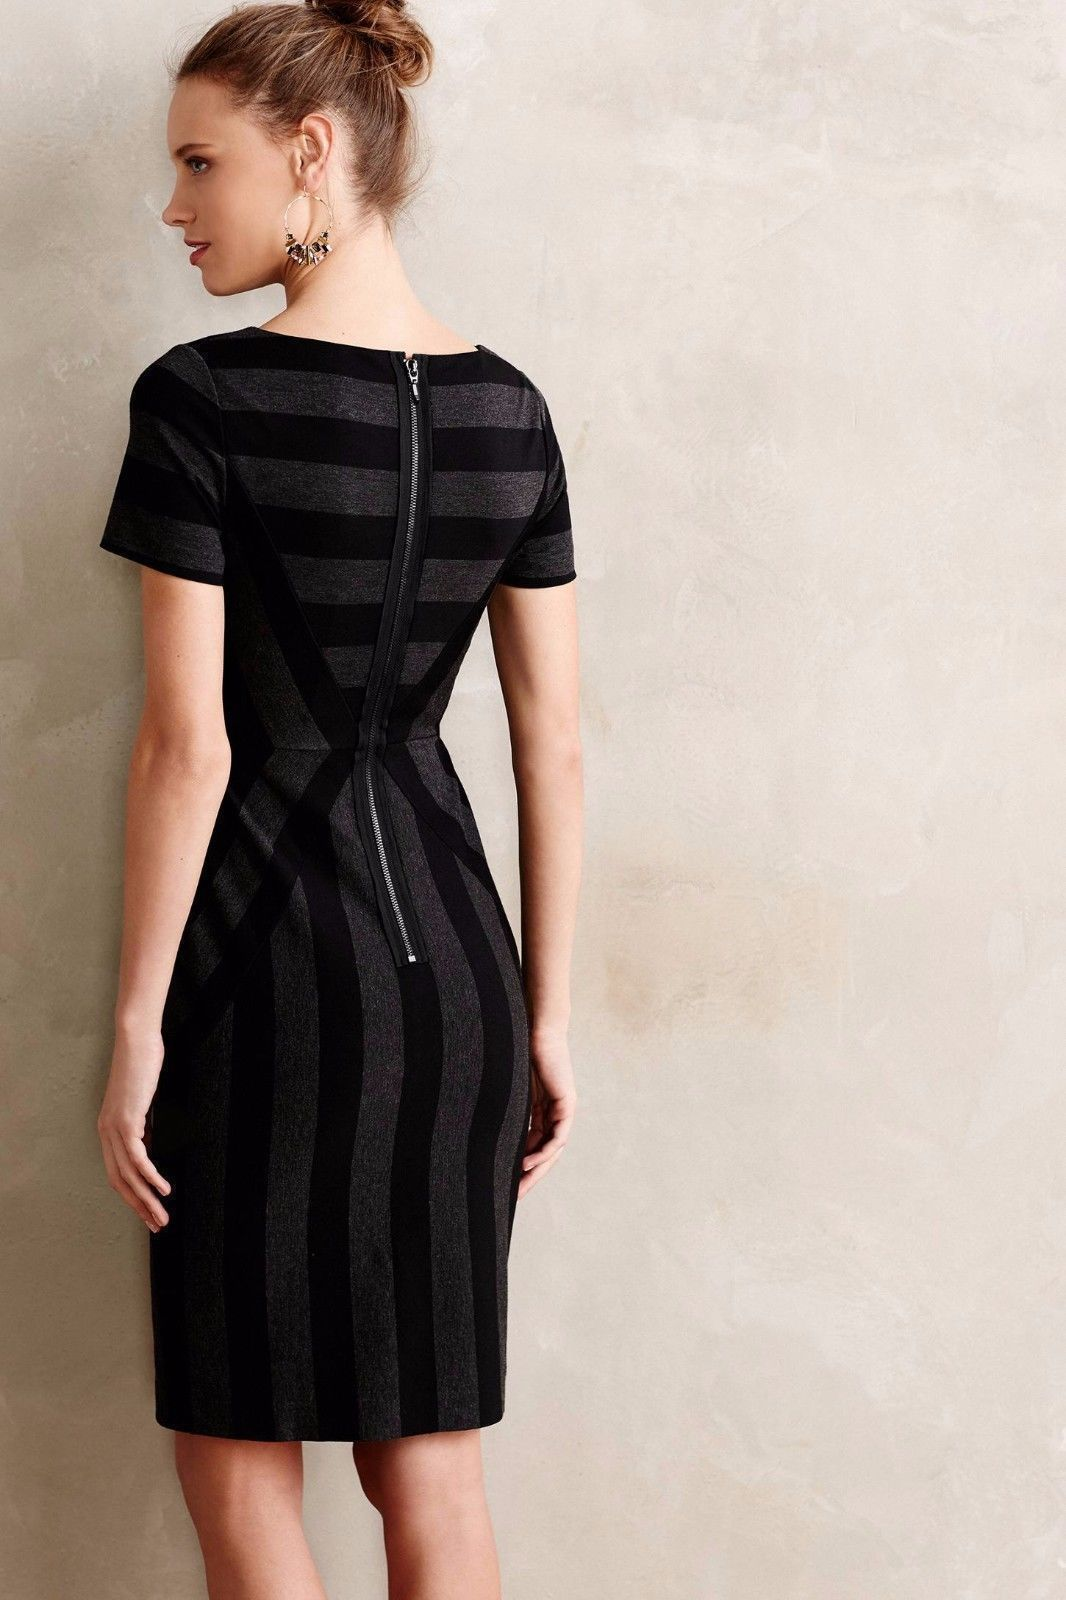 NWT ANTHROPOLOGIE GEOPLANE PENCIL DRESS by MAEVE 6